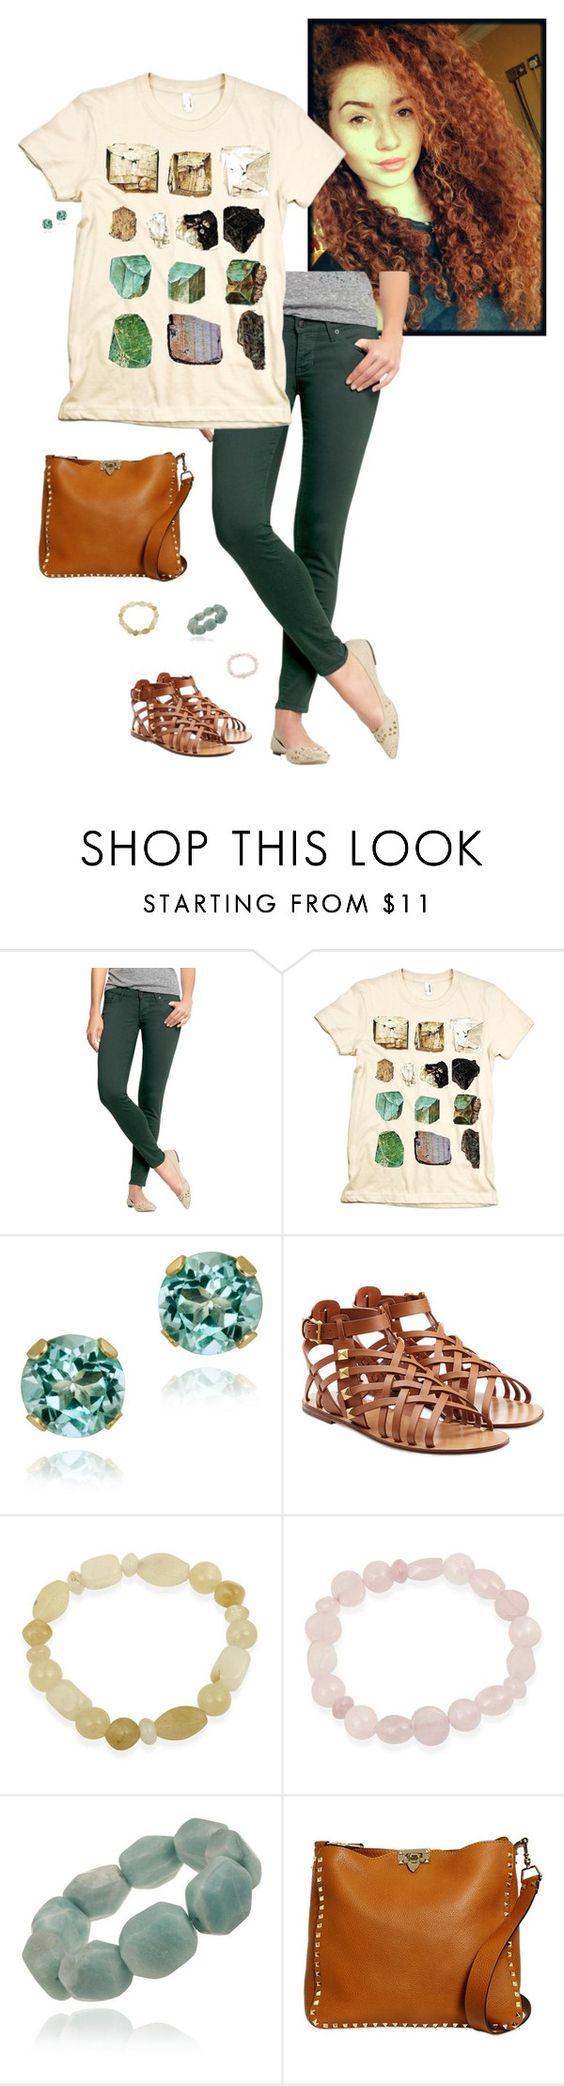 """Untitled #881"" by ninfodora ❤ liked on Polyvore featuring moda, Old Navy, Glitzy Rocks, Valentino, women's clothing, women's fashion, women, female, woman i misses"